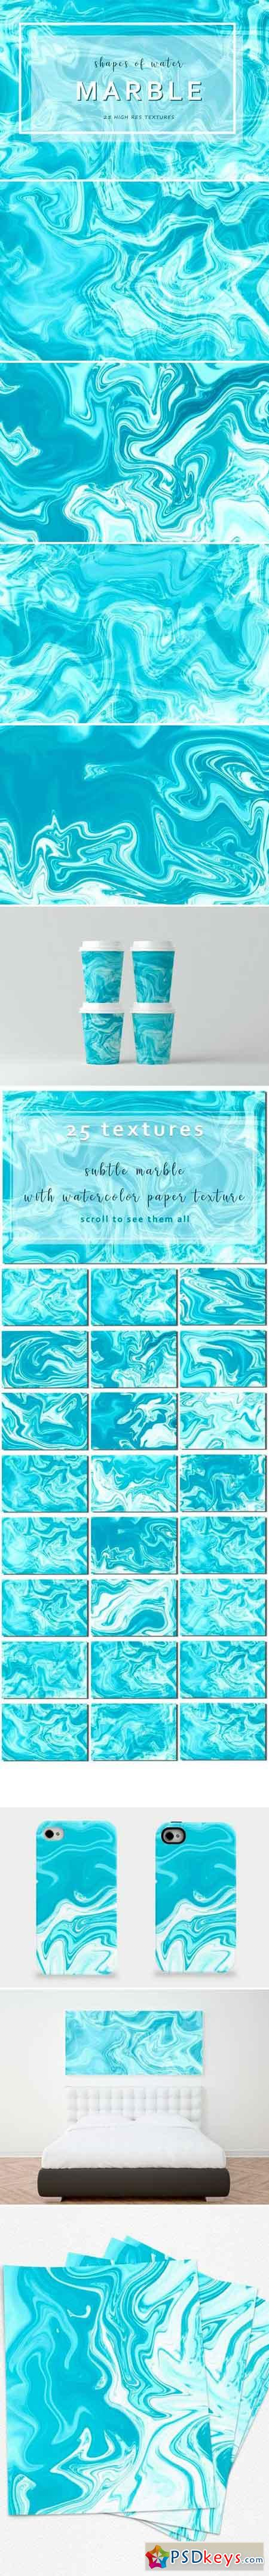 25 Marble Textures Shapes of Water 2515237